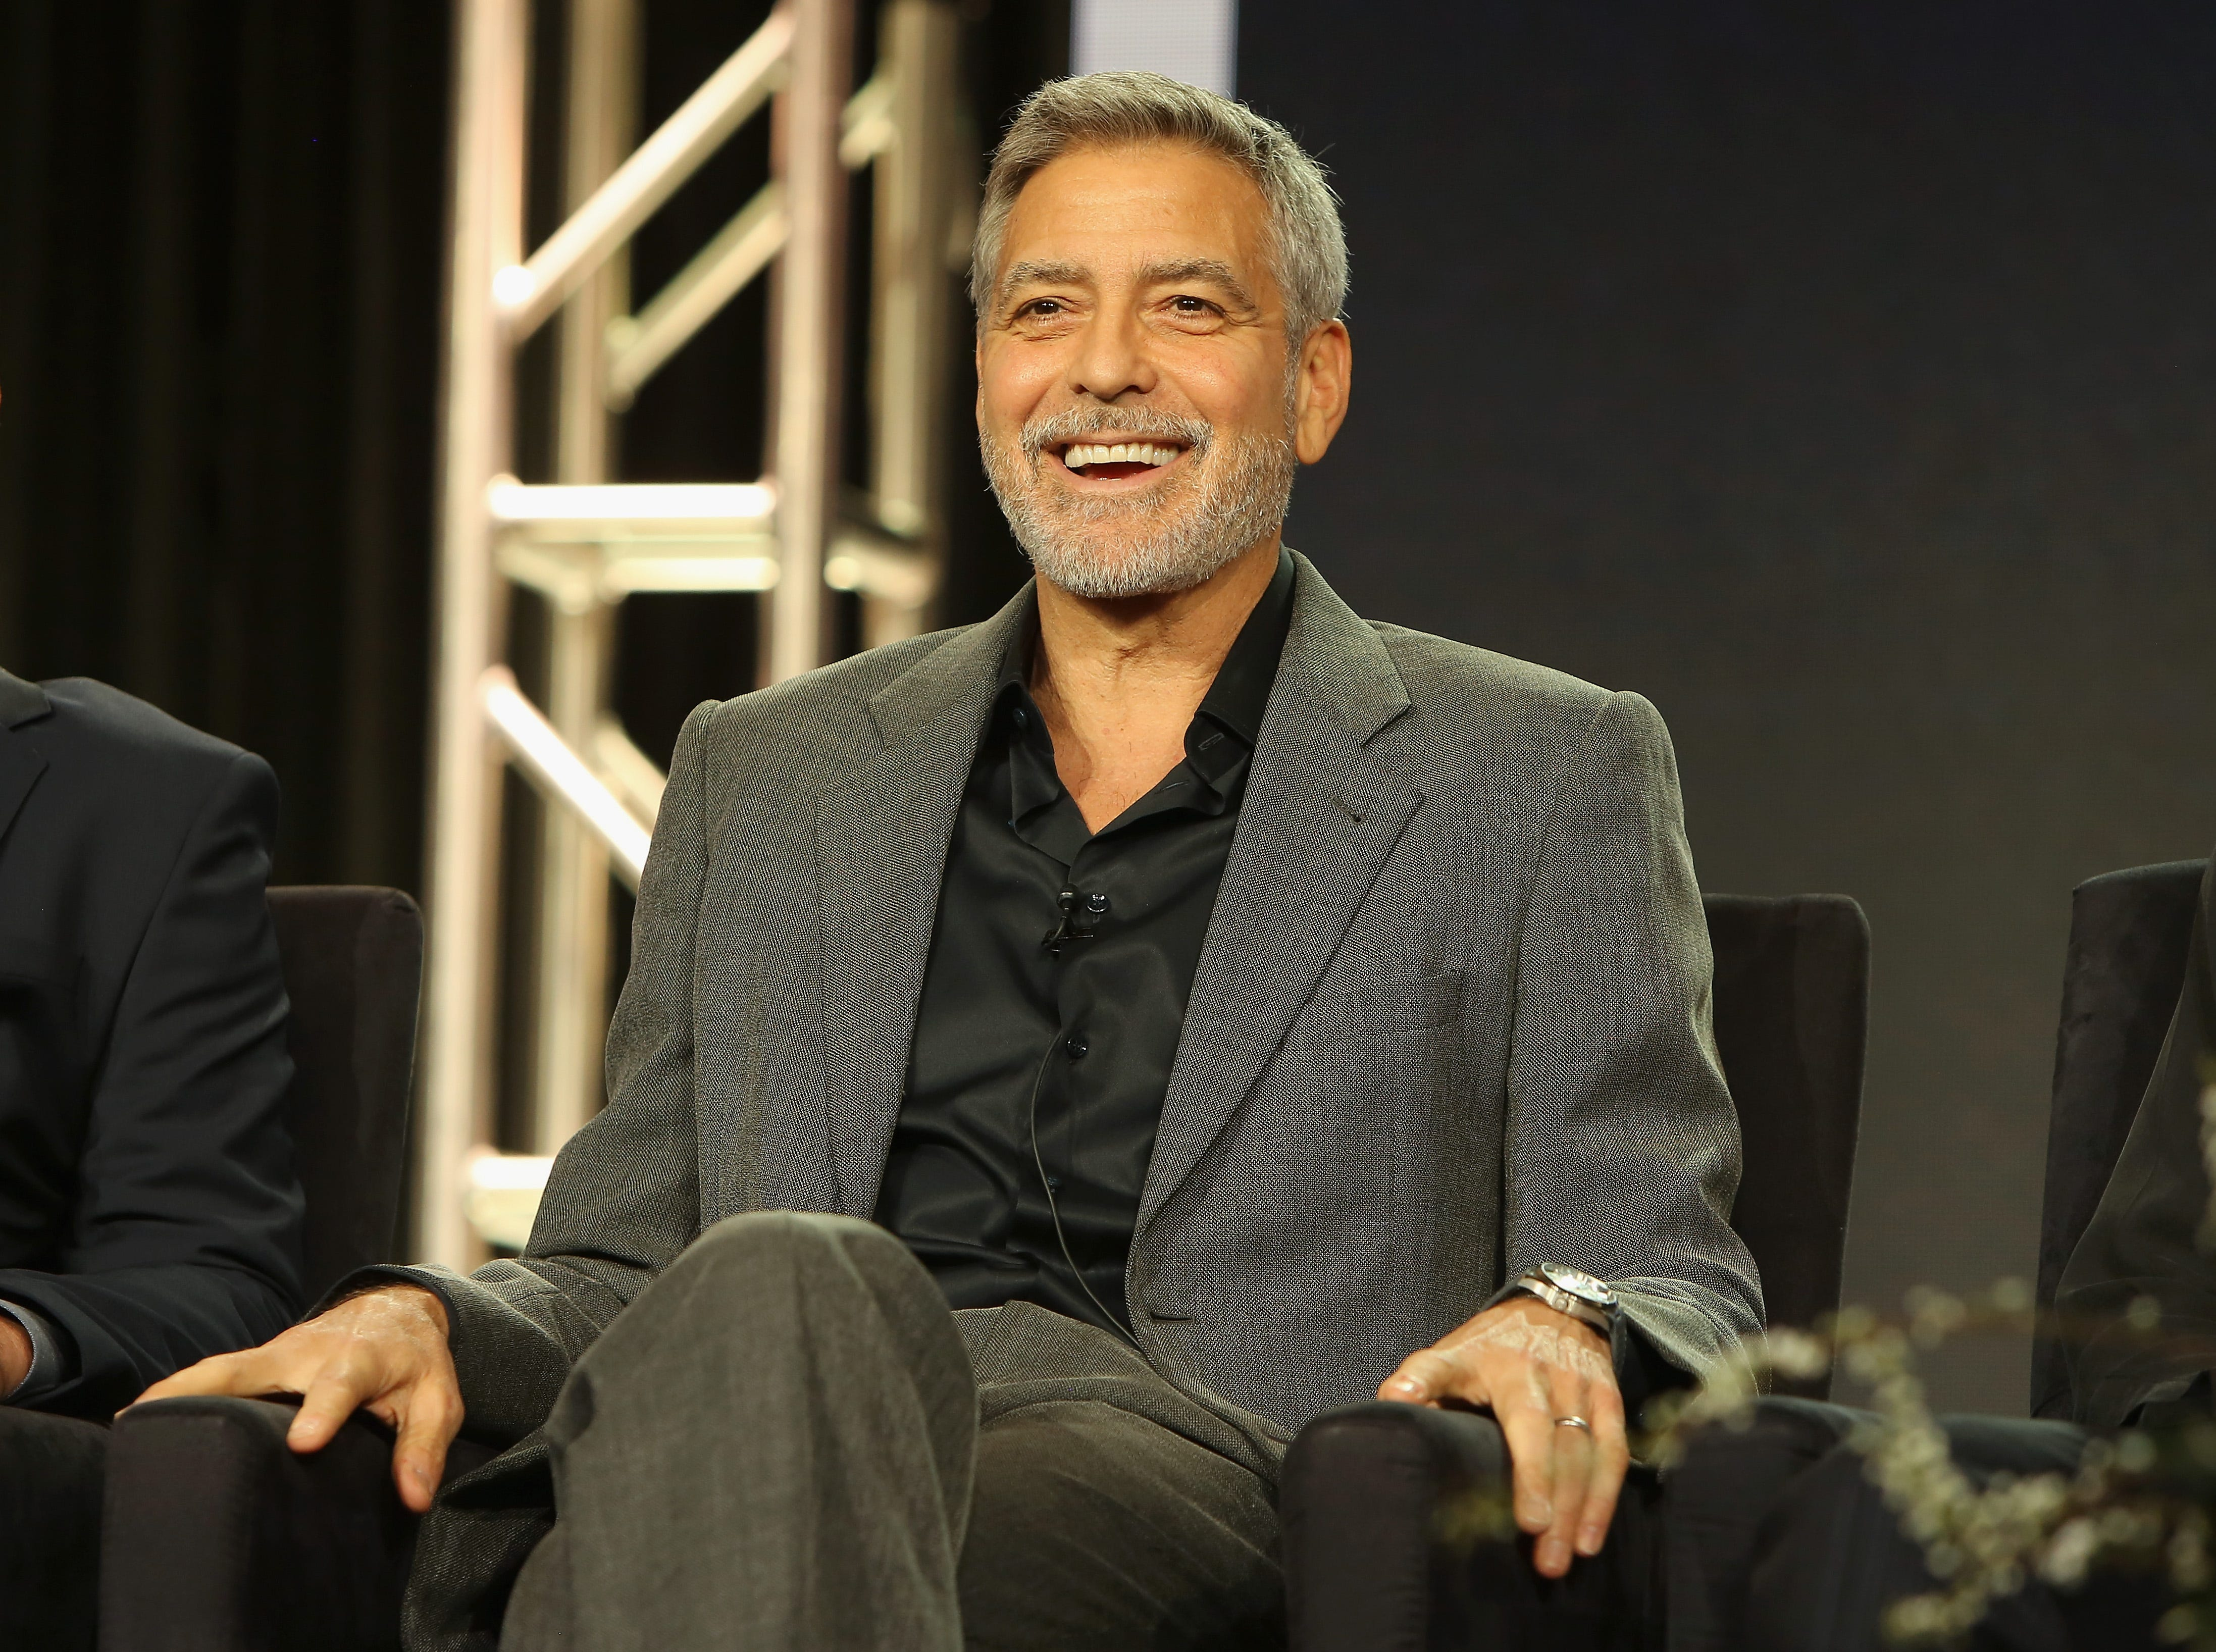 """It's time for the Television Critics Association's winter press tour in Pasadena, Calif., where networks present their shows to TV journalists. Here, George Clooney laughs during Hulu's """"Catch 22"""" panel."""